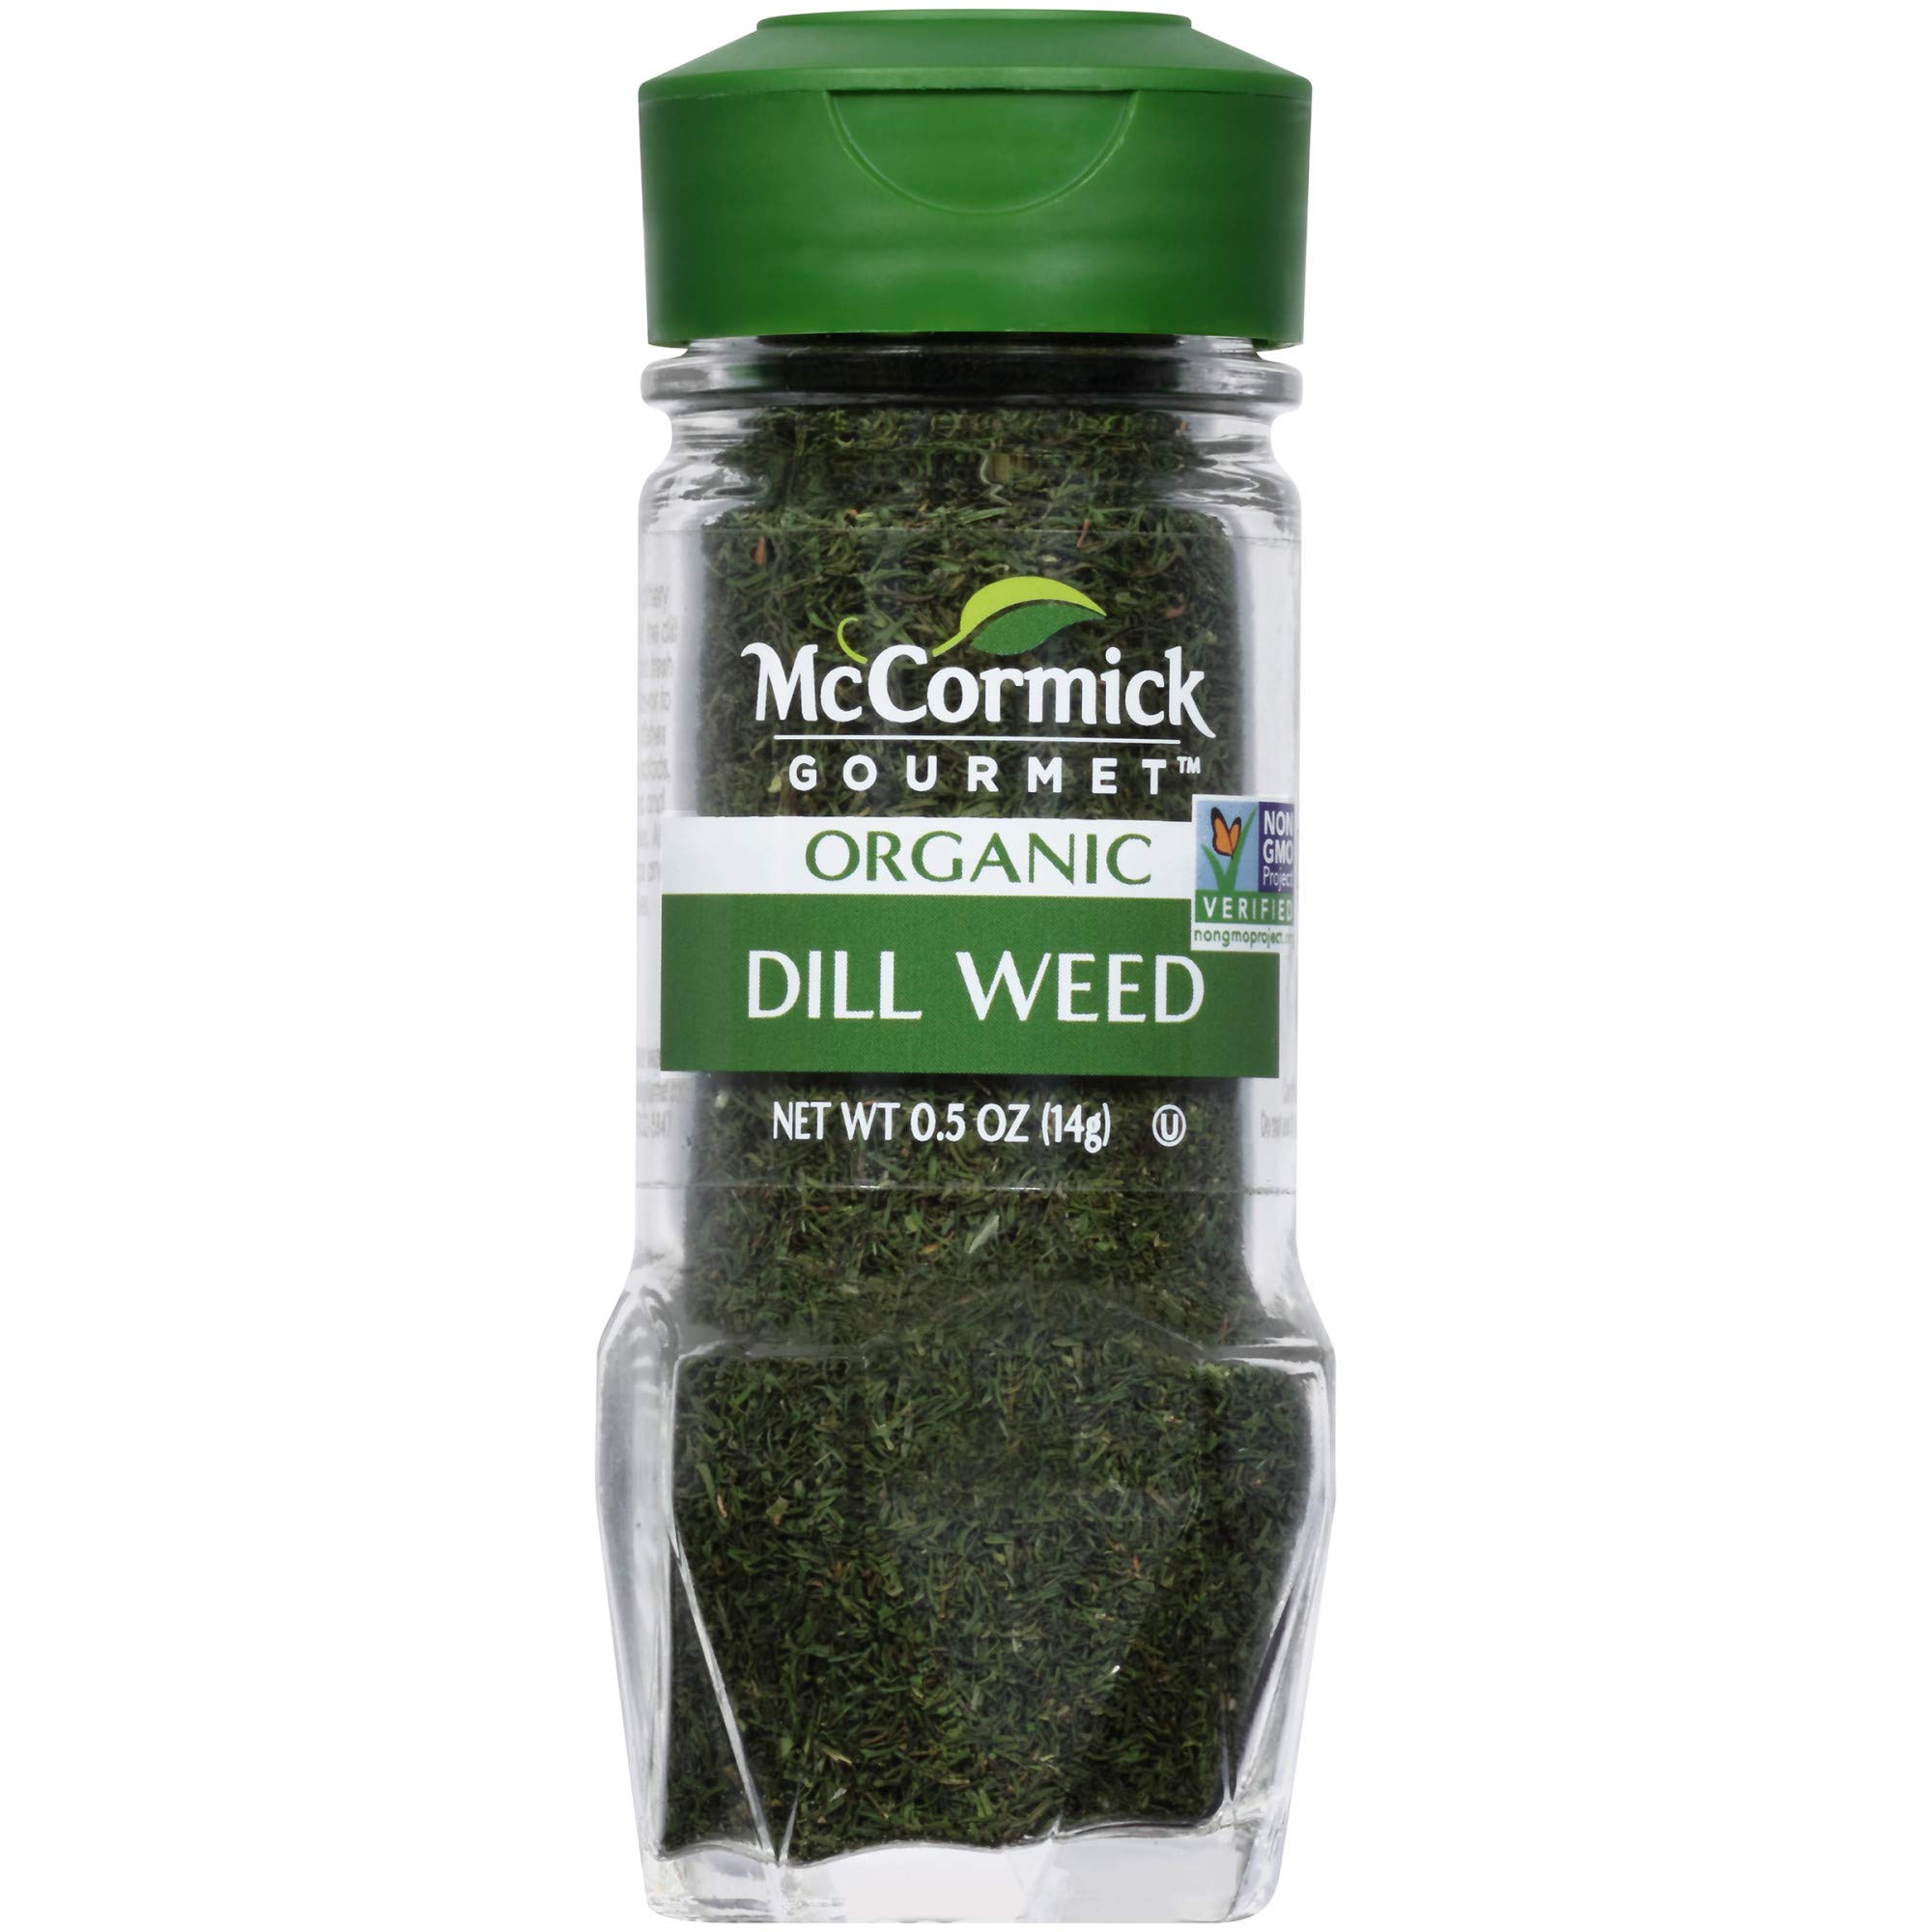 McCormick Organic Dill Weed .5 oz (Pack of 3)